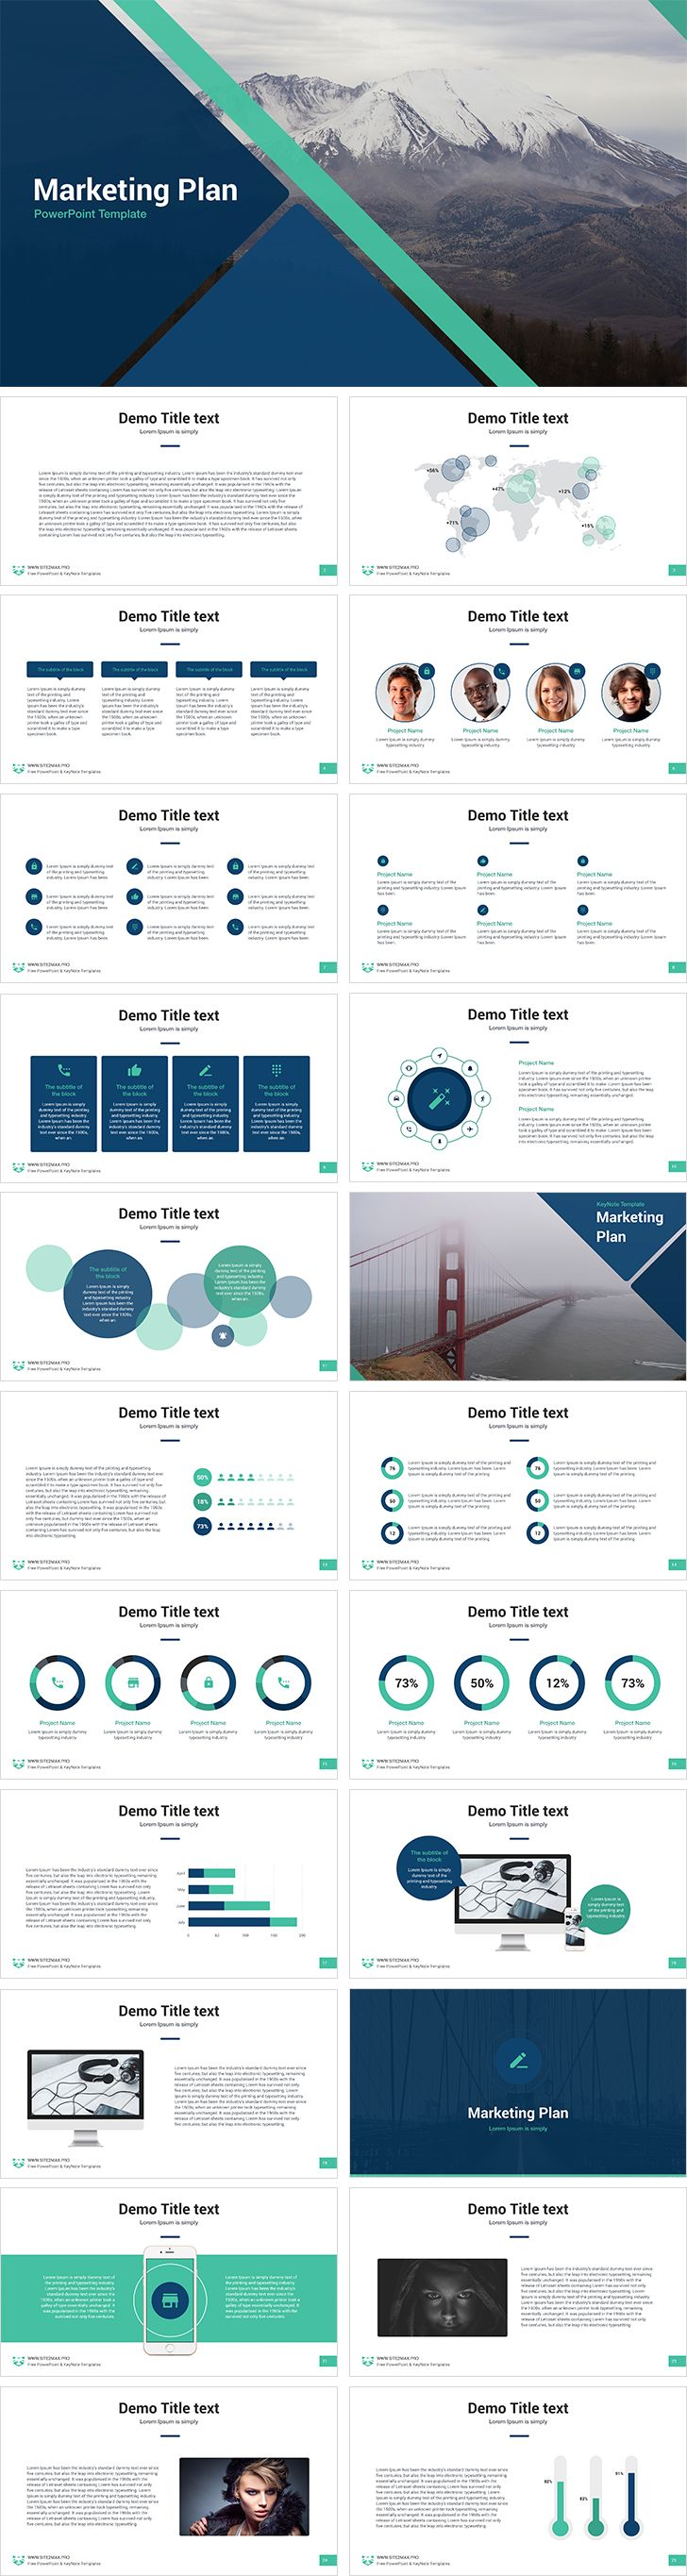 The Marketing Plan free PowerPoint template is 26 unique slides in two formats. Built-in tools allow you to change the presentations to your taste.